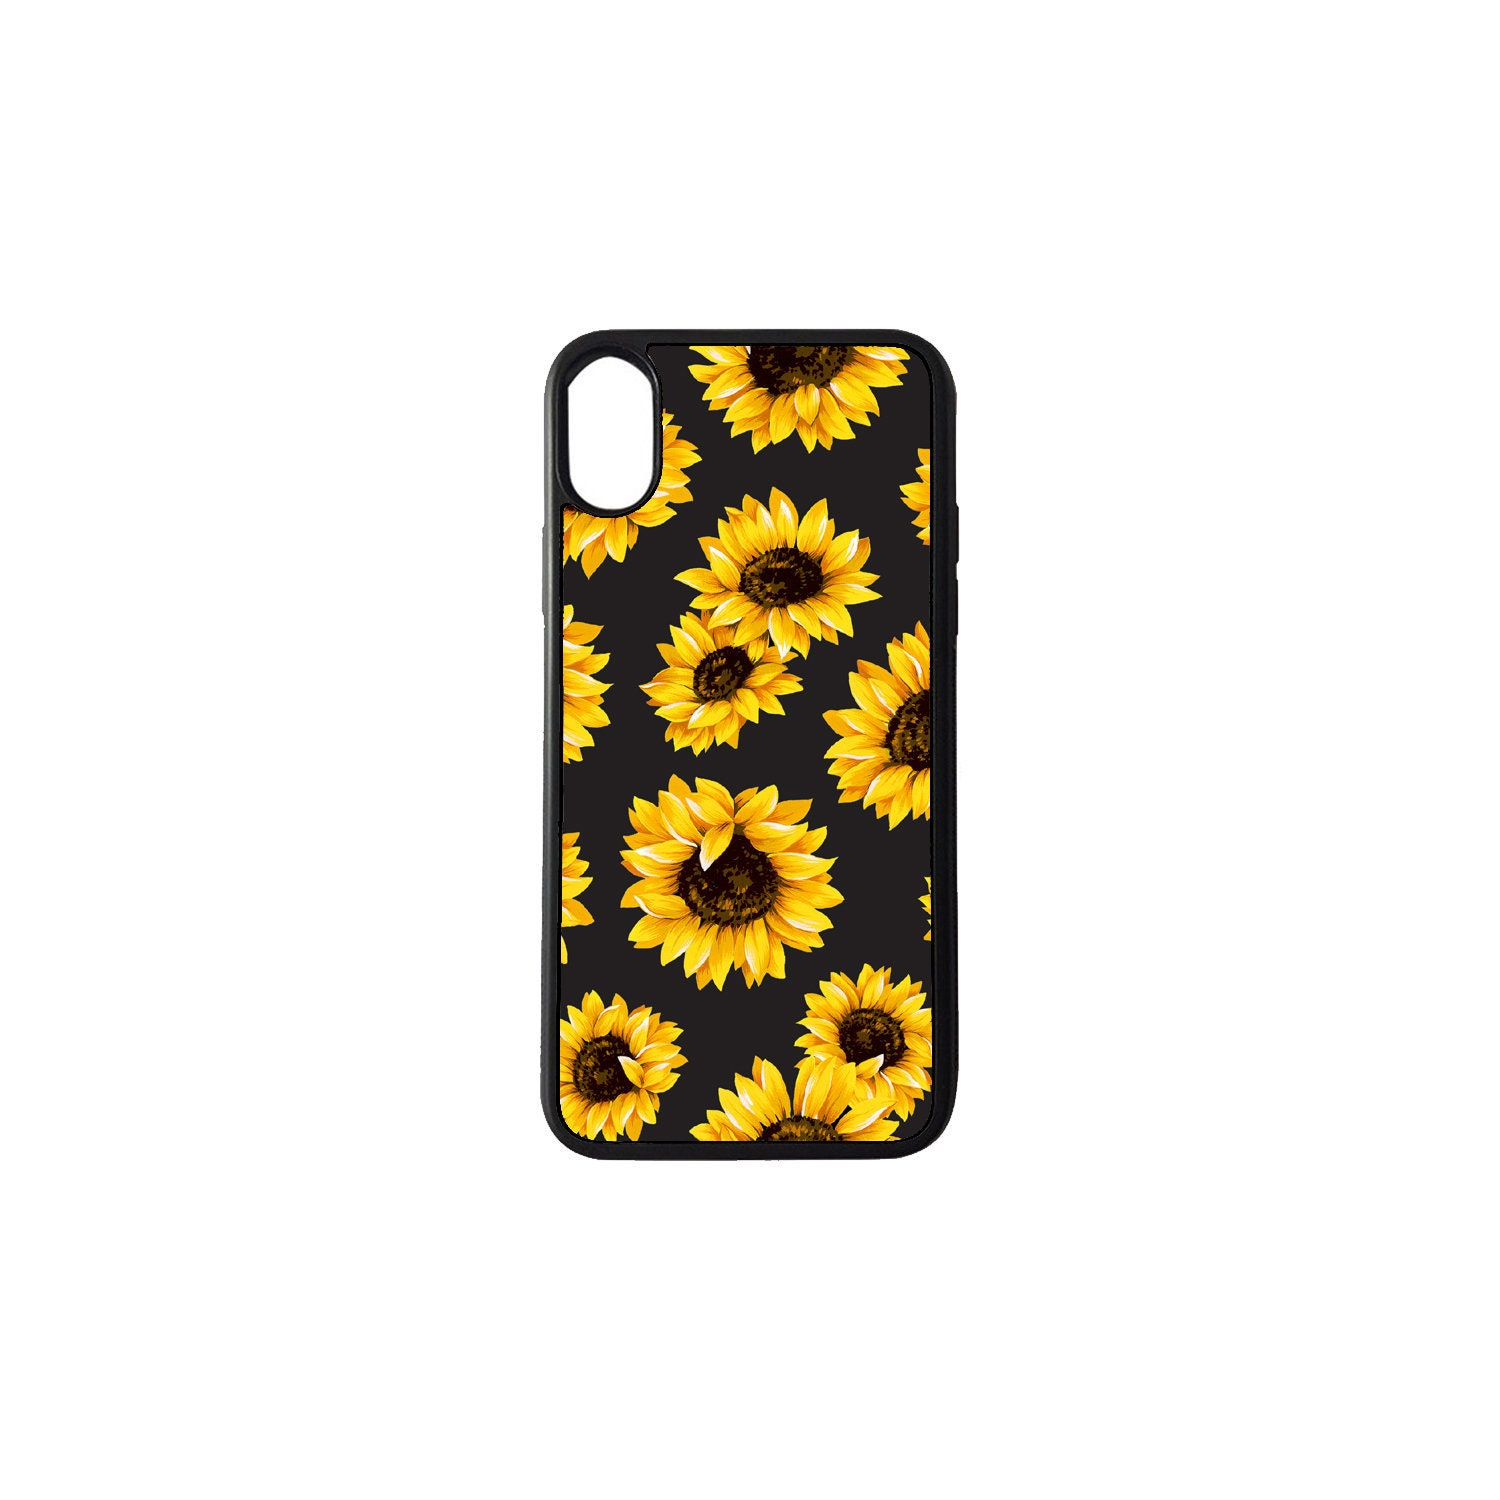 Sunflowers Floral Iphone 8 Case Iphone 8 Plus Case Iphone 7 Etsy